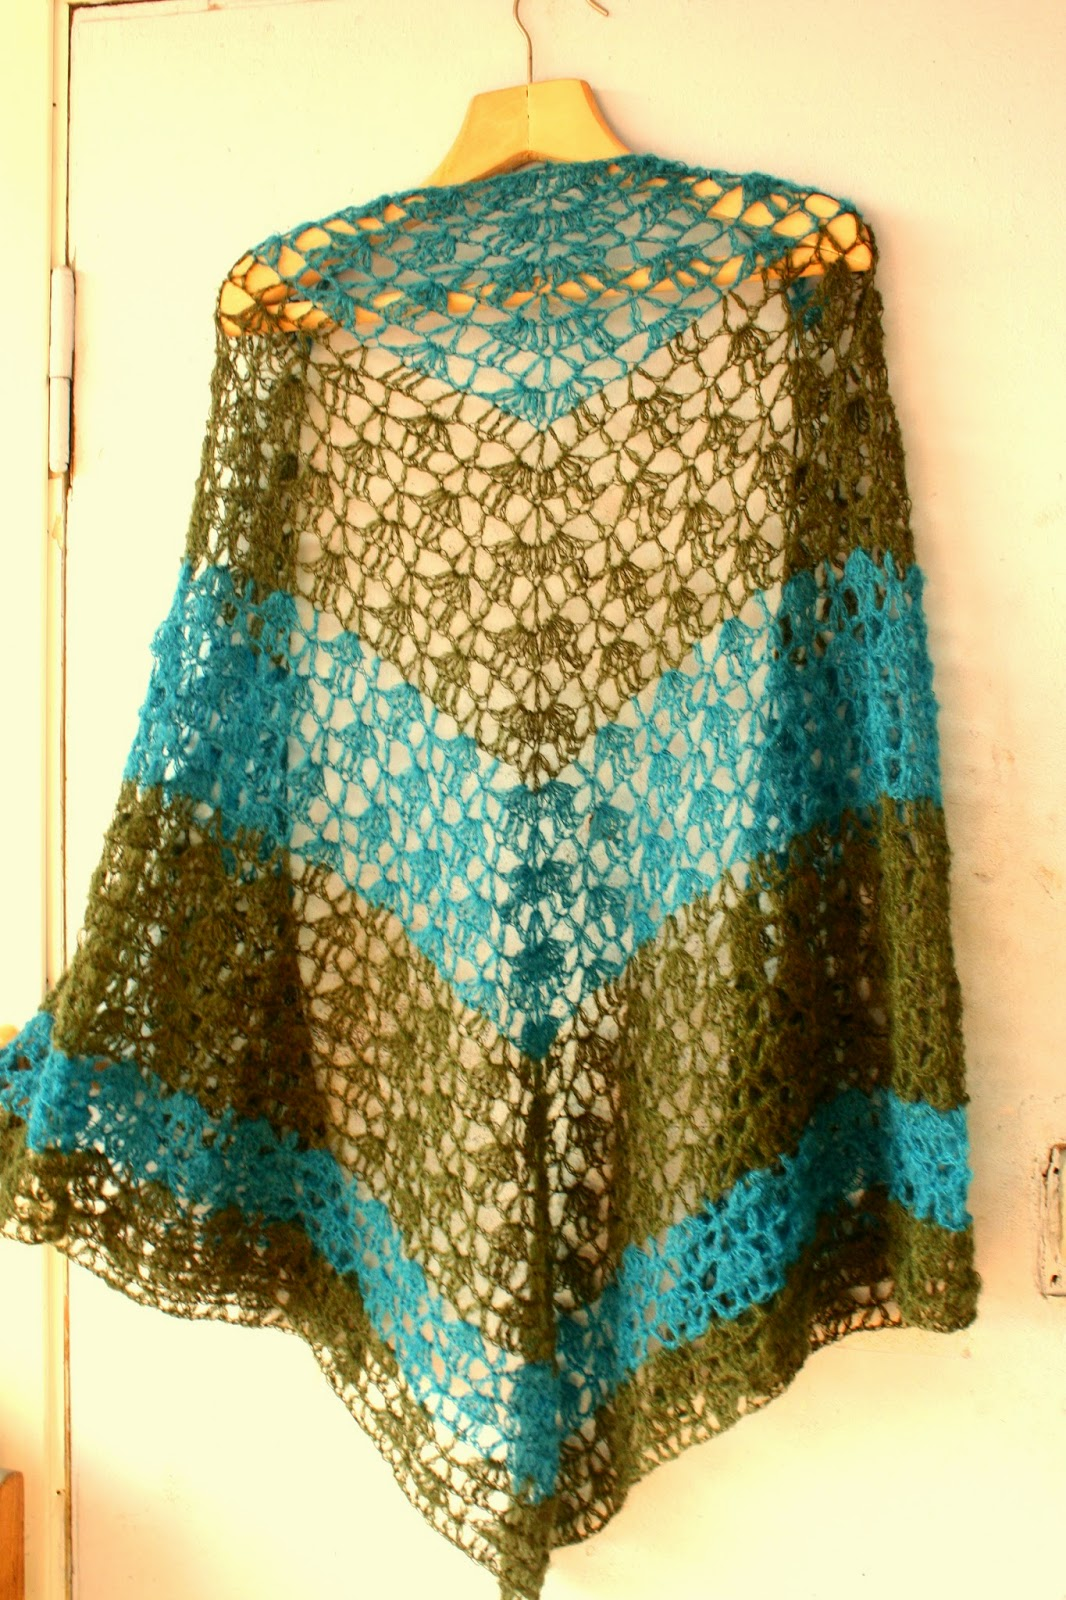 Crochet Triangle : crochet triangle scarf free pattern